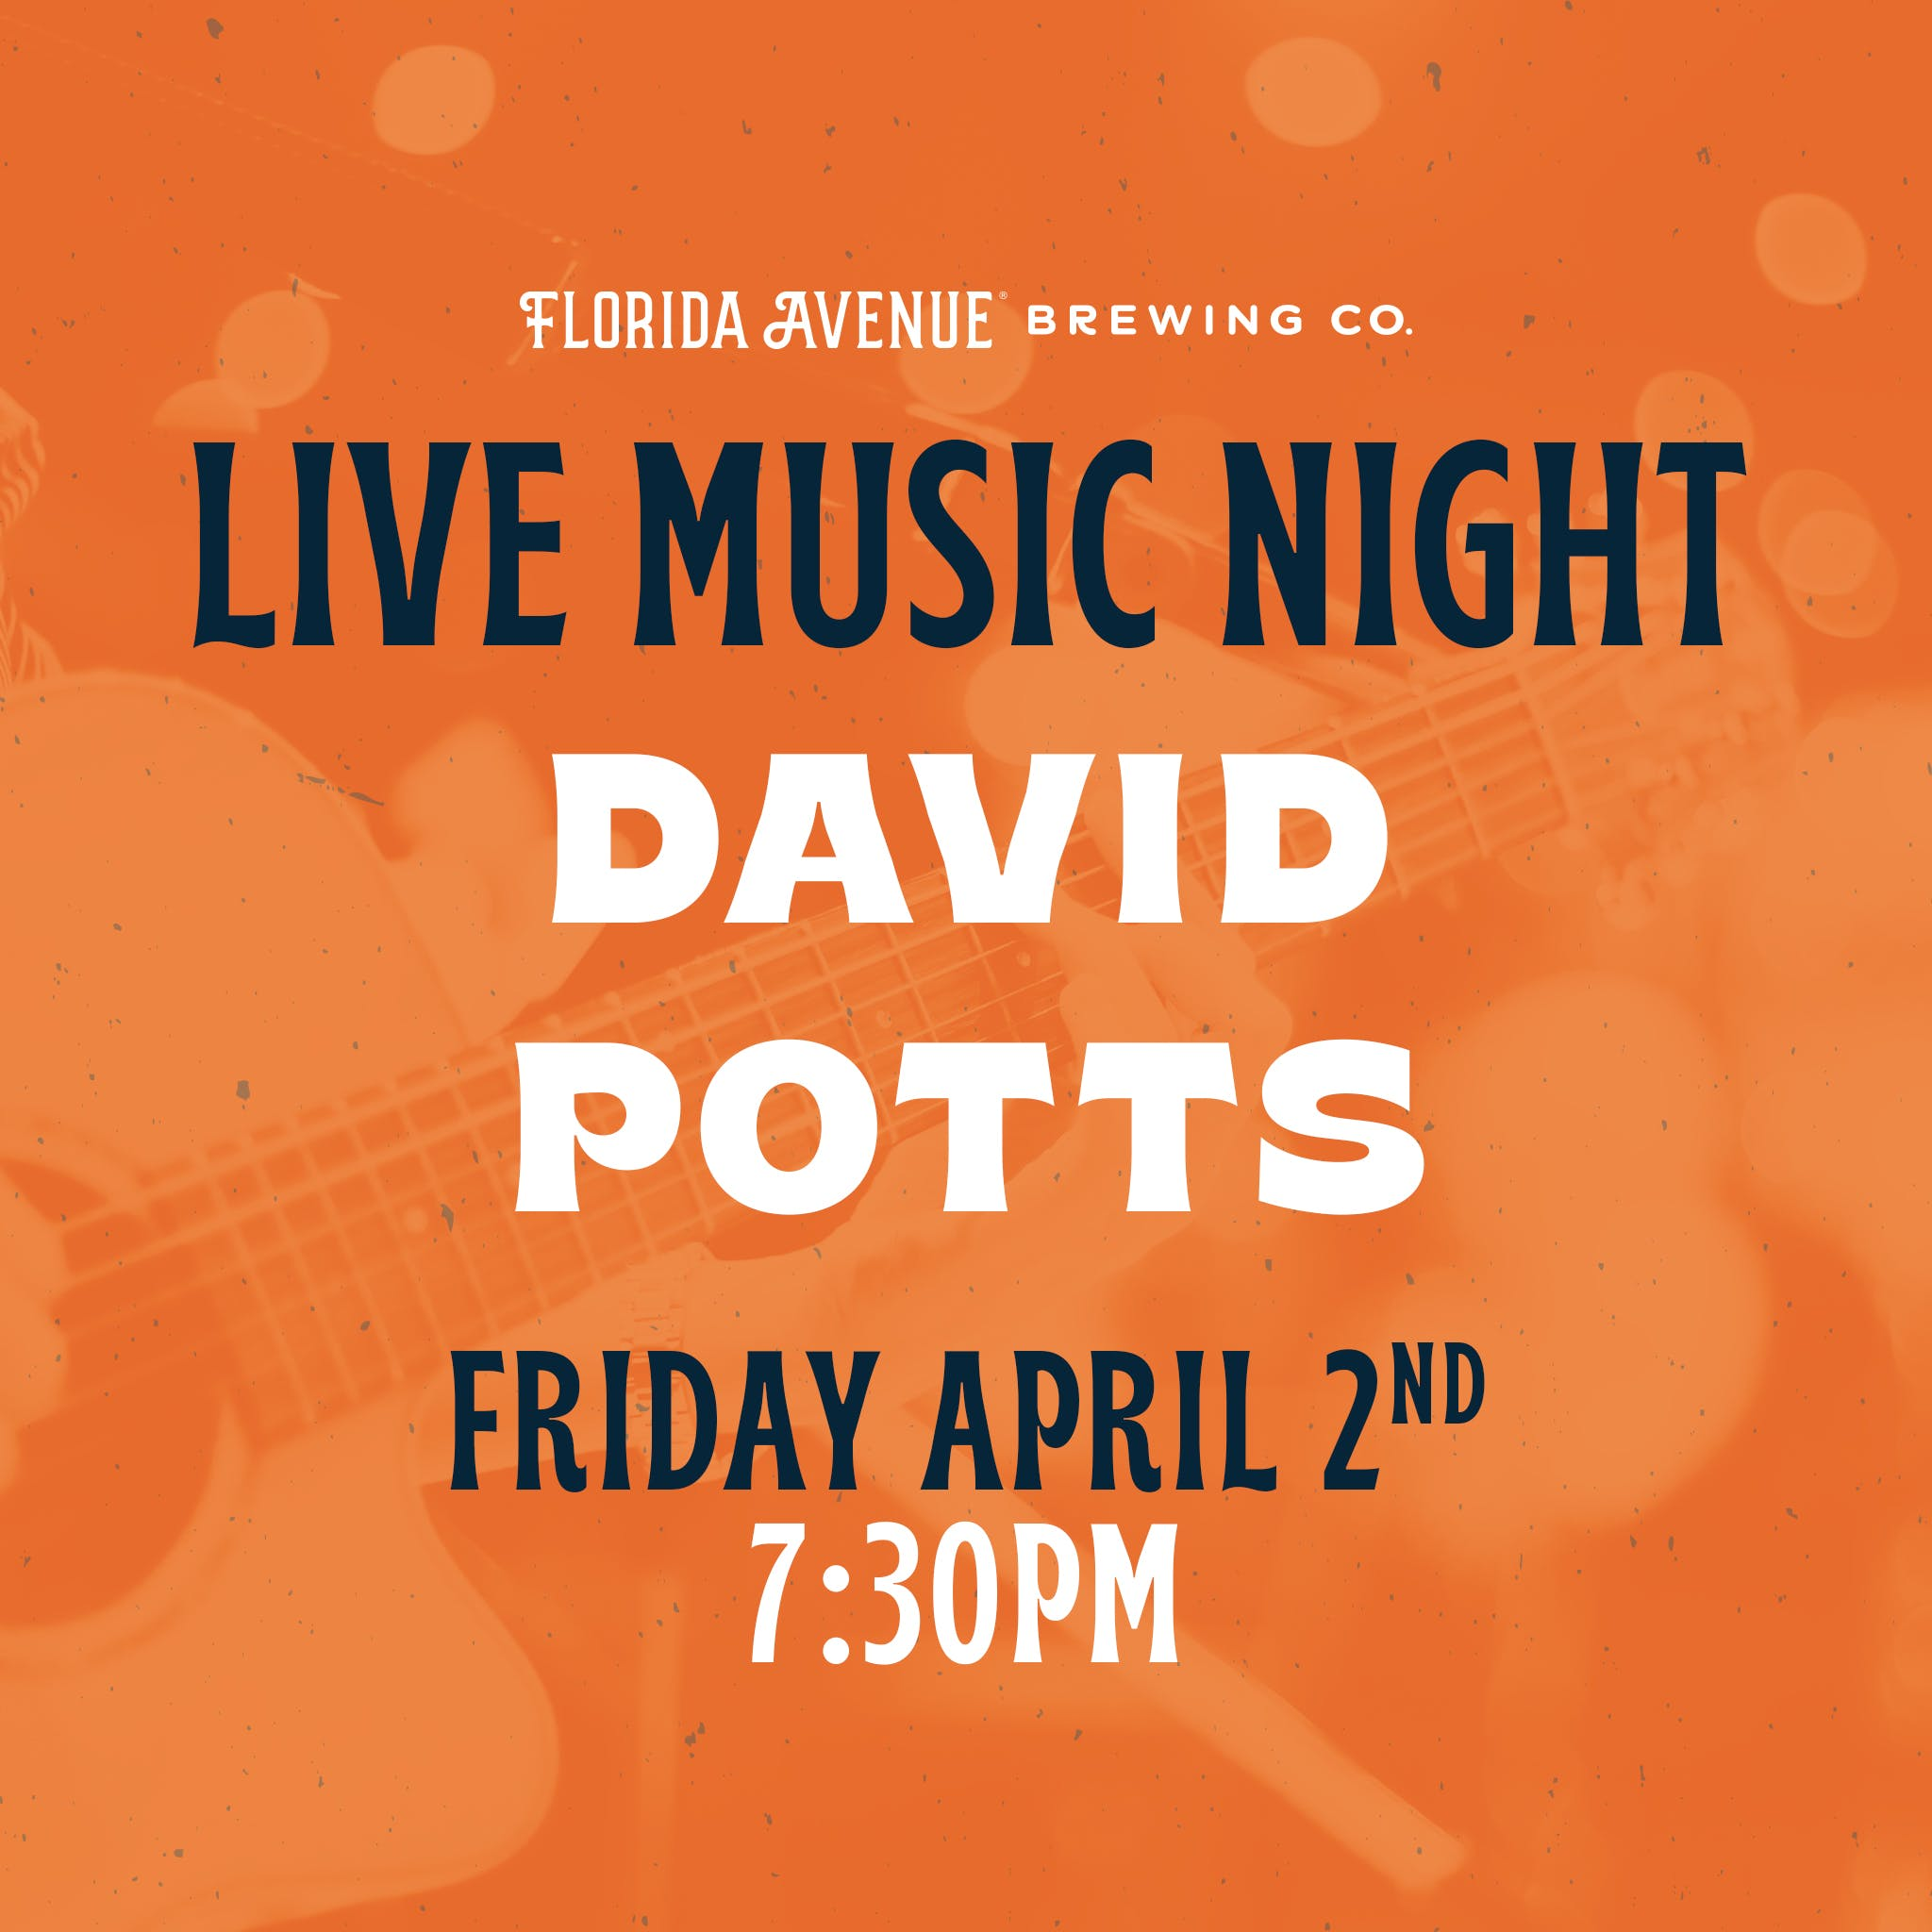 DAVID POTTS APRIL 2ND